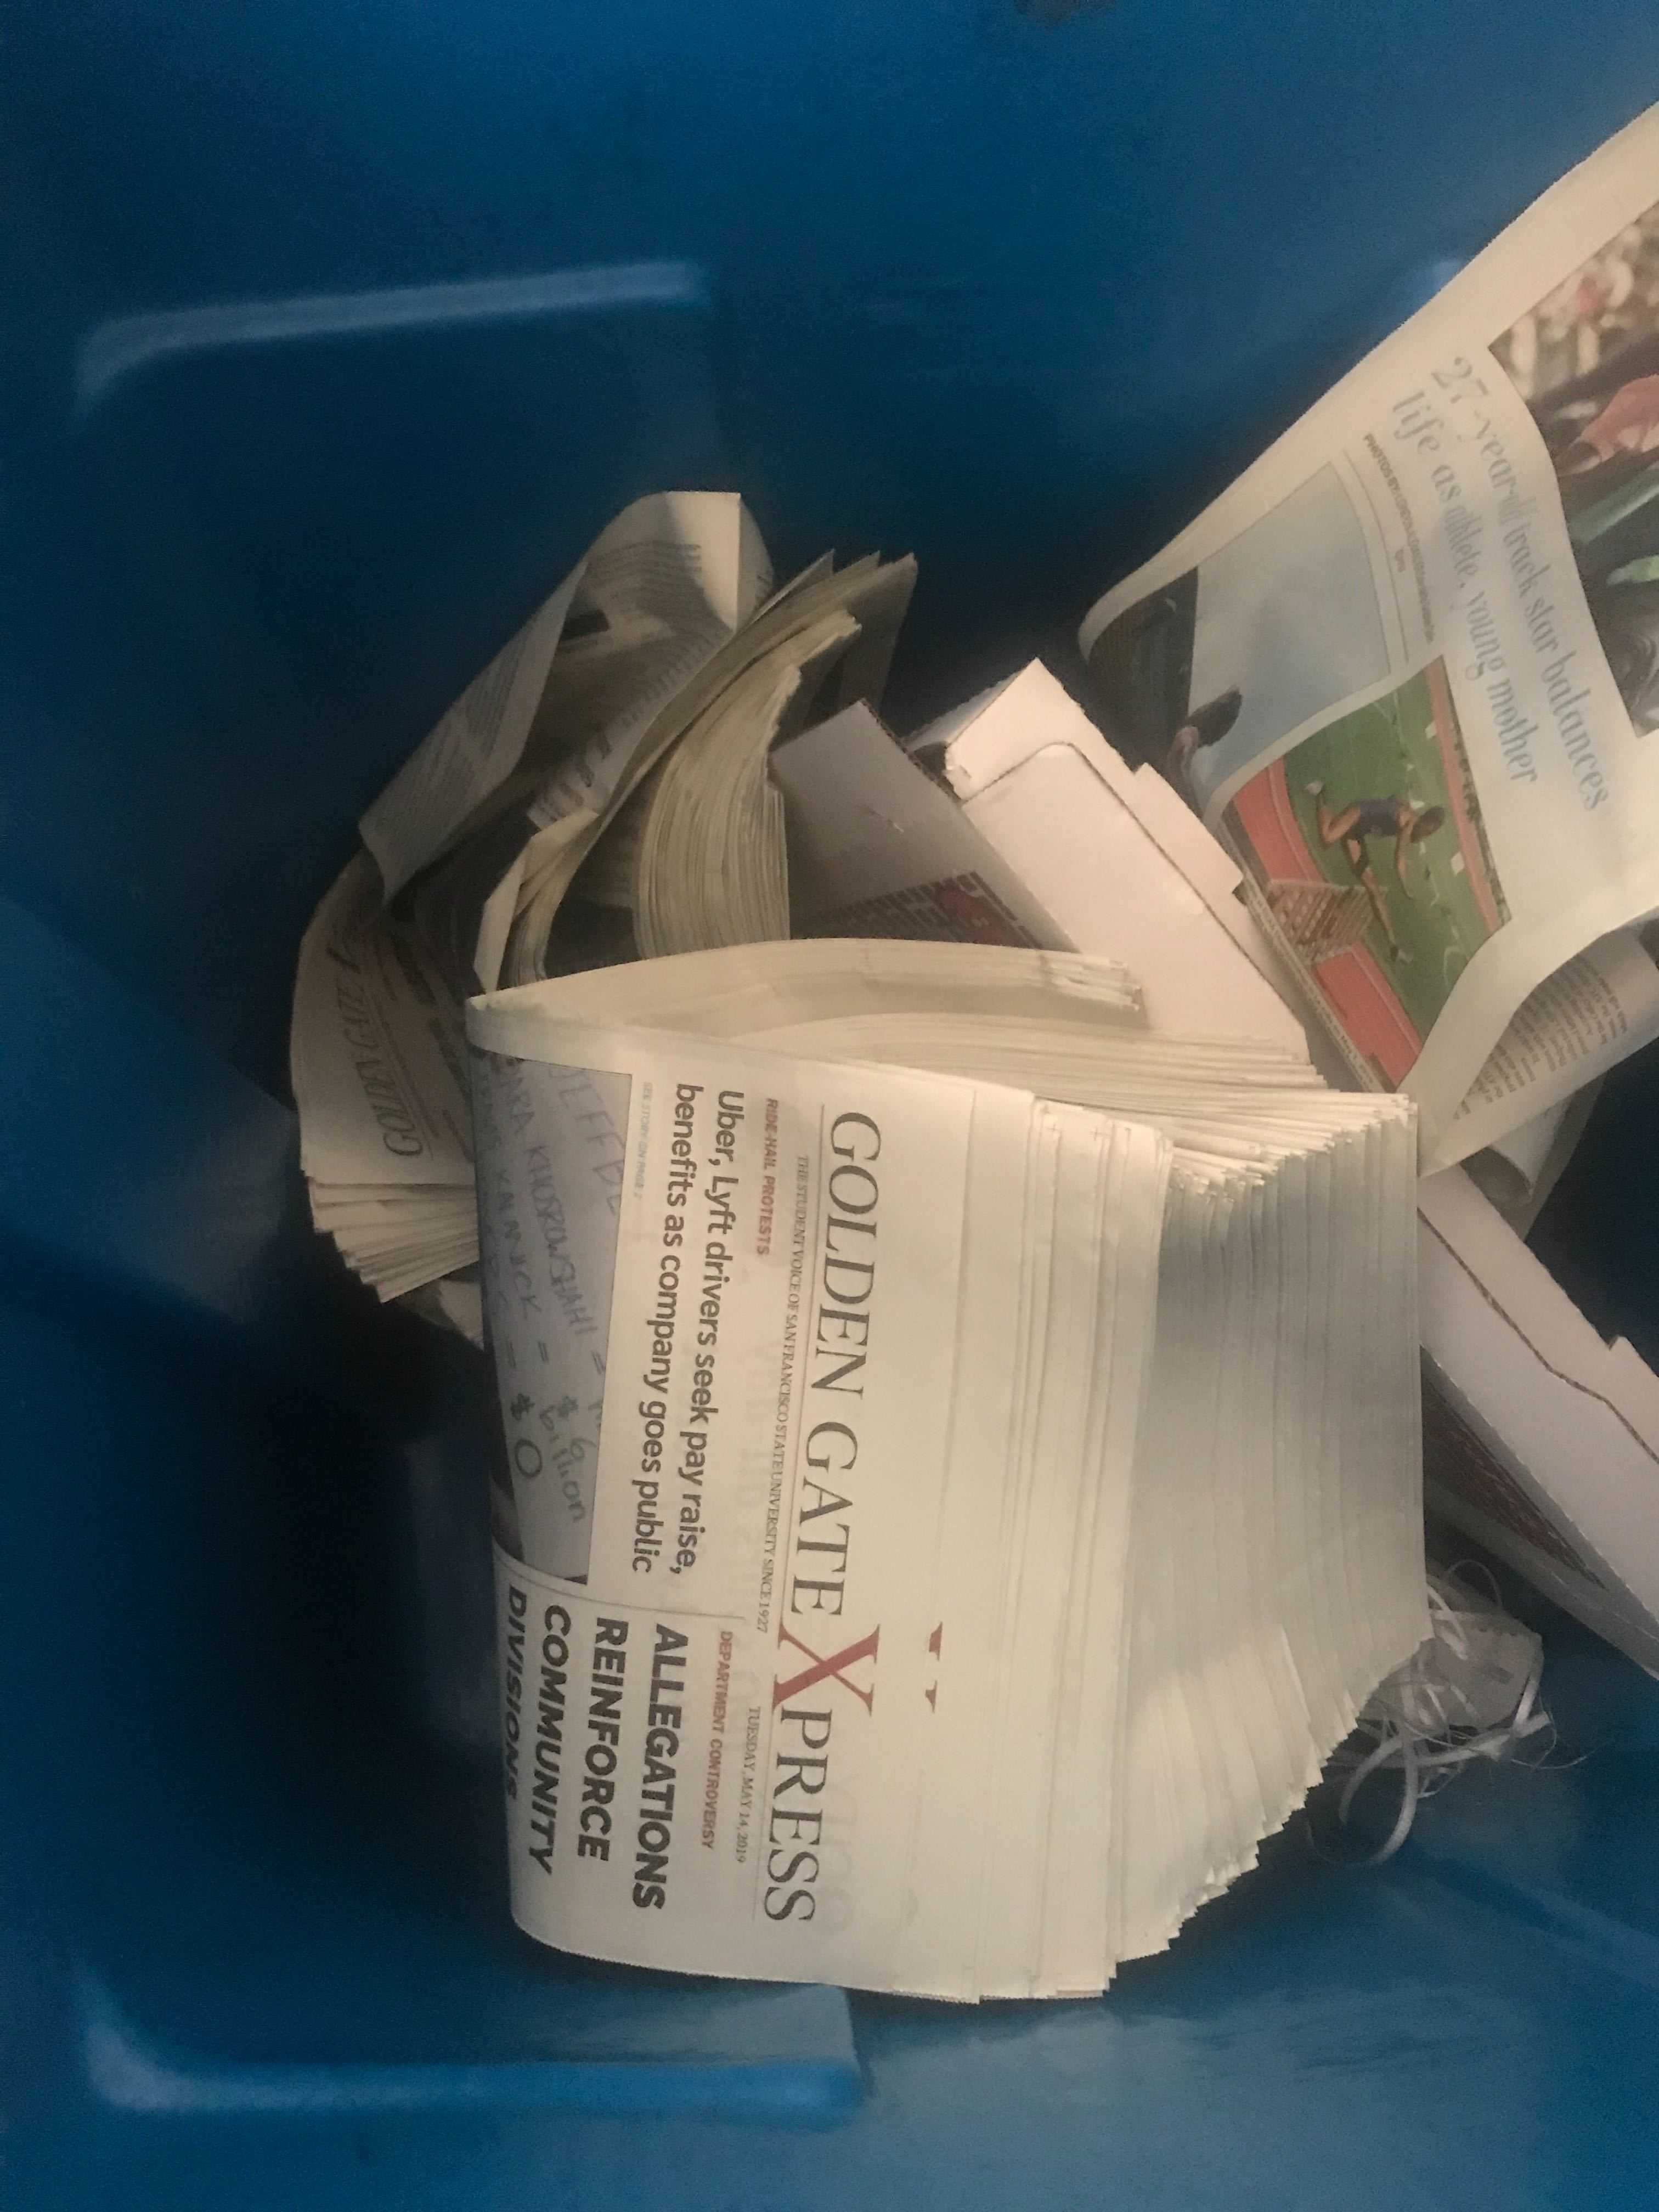 300 copies of Golden Gate Xpress newspapers were found in a nearby trashcan to the Rm. 125 purple box in the Humanities Building on May 15, 2019. (MONSERRATH ARREOLA/Golden Gate Xpress)